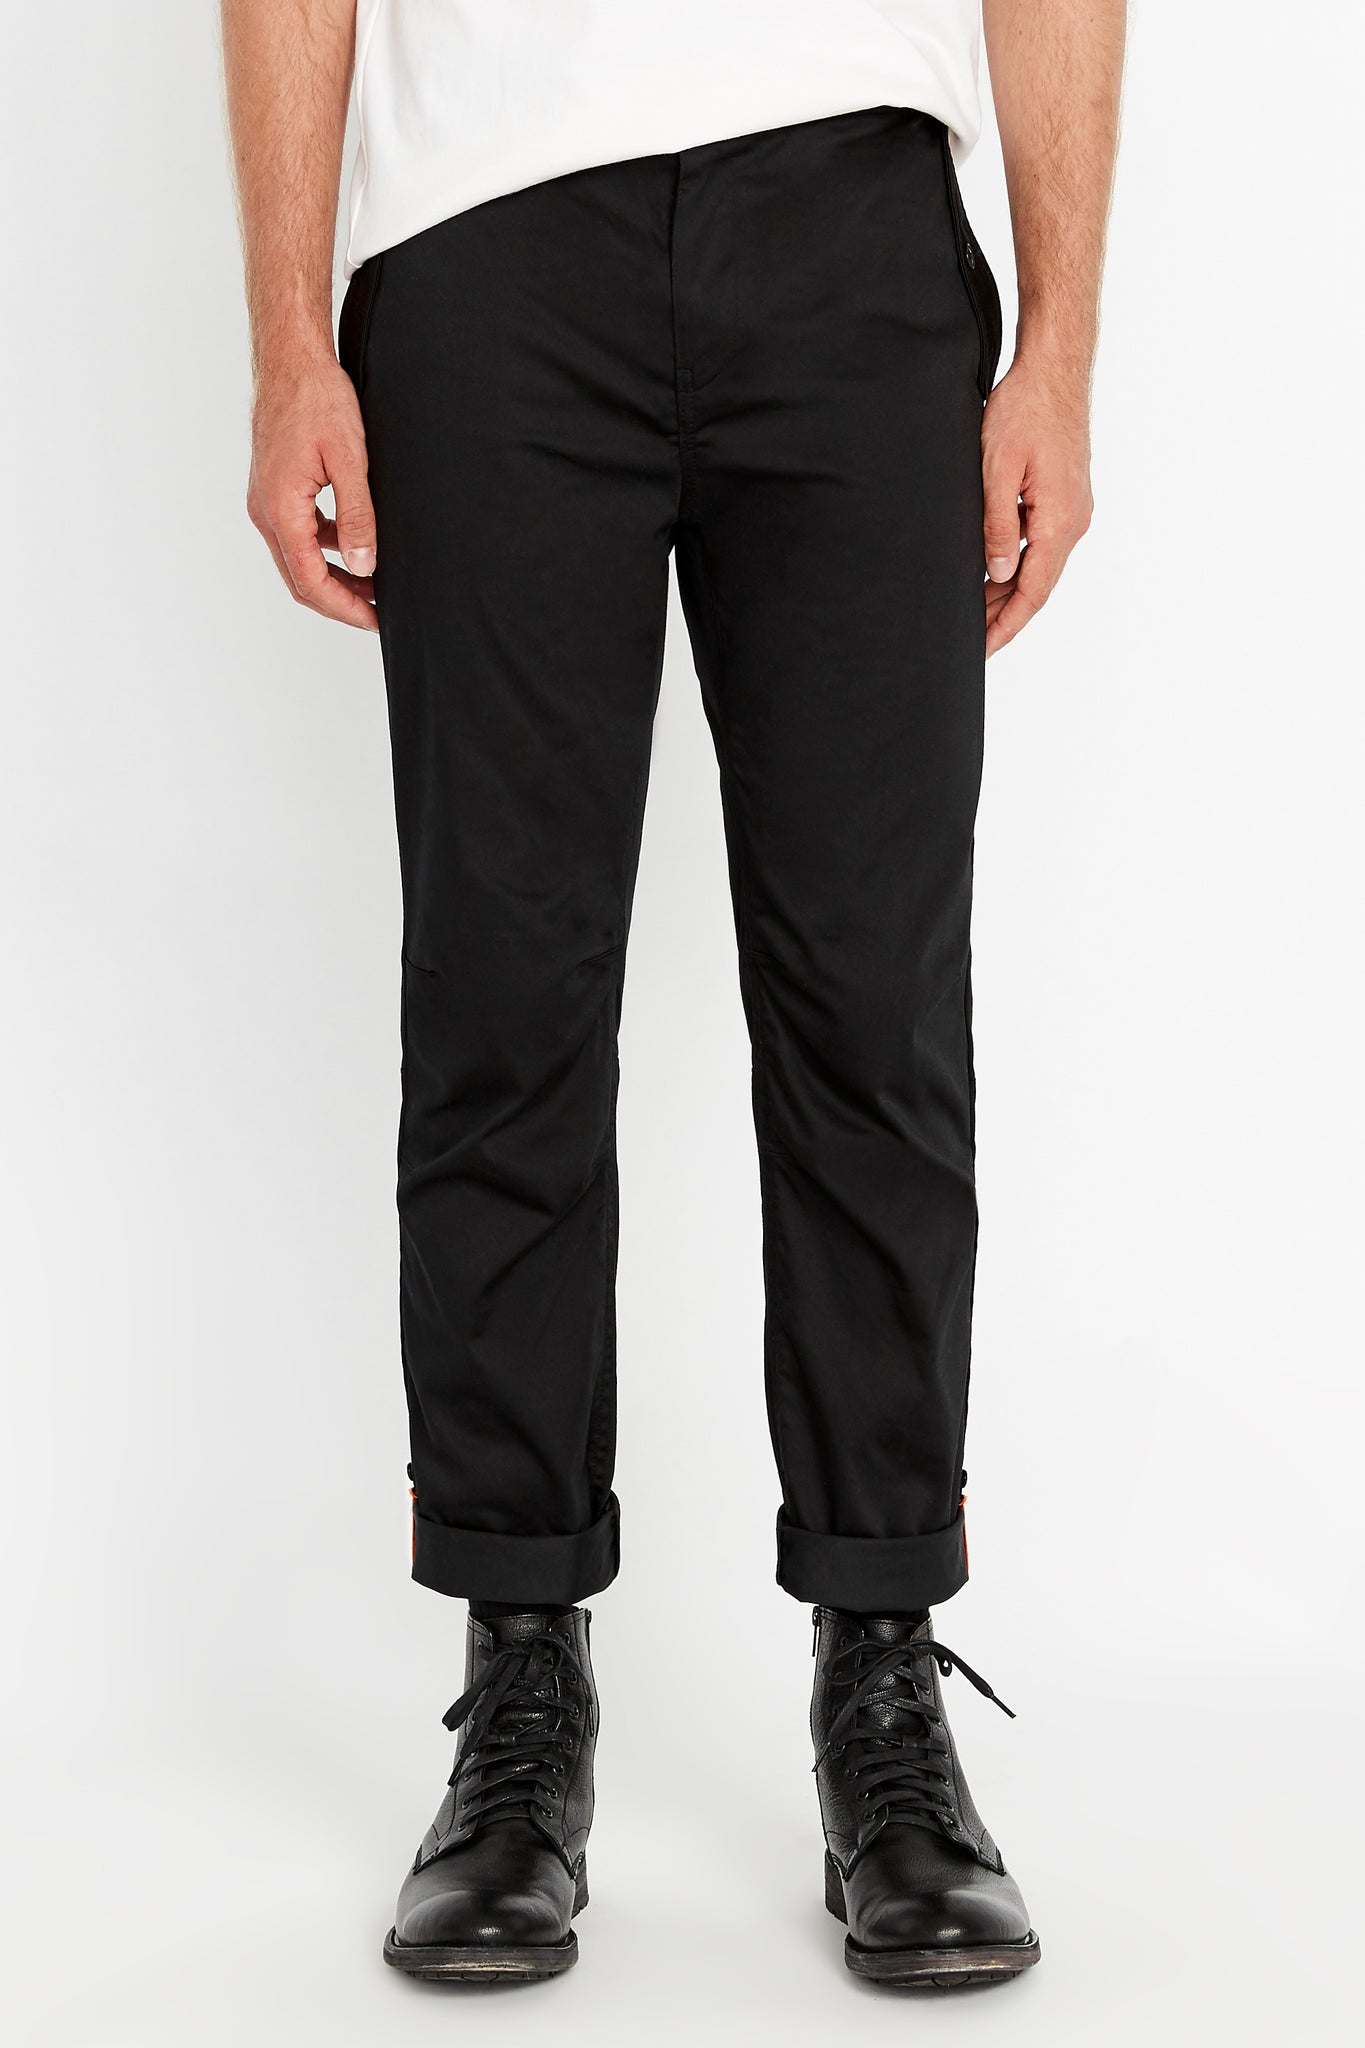 Front view of black pants with rolled up hem